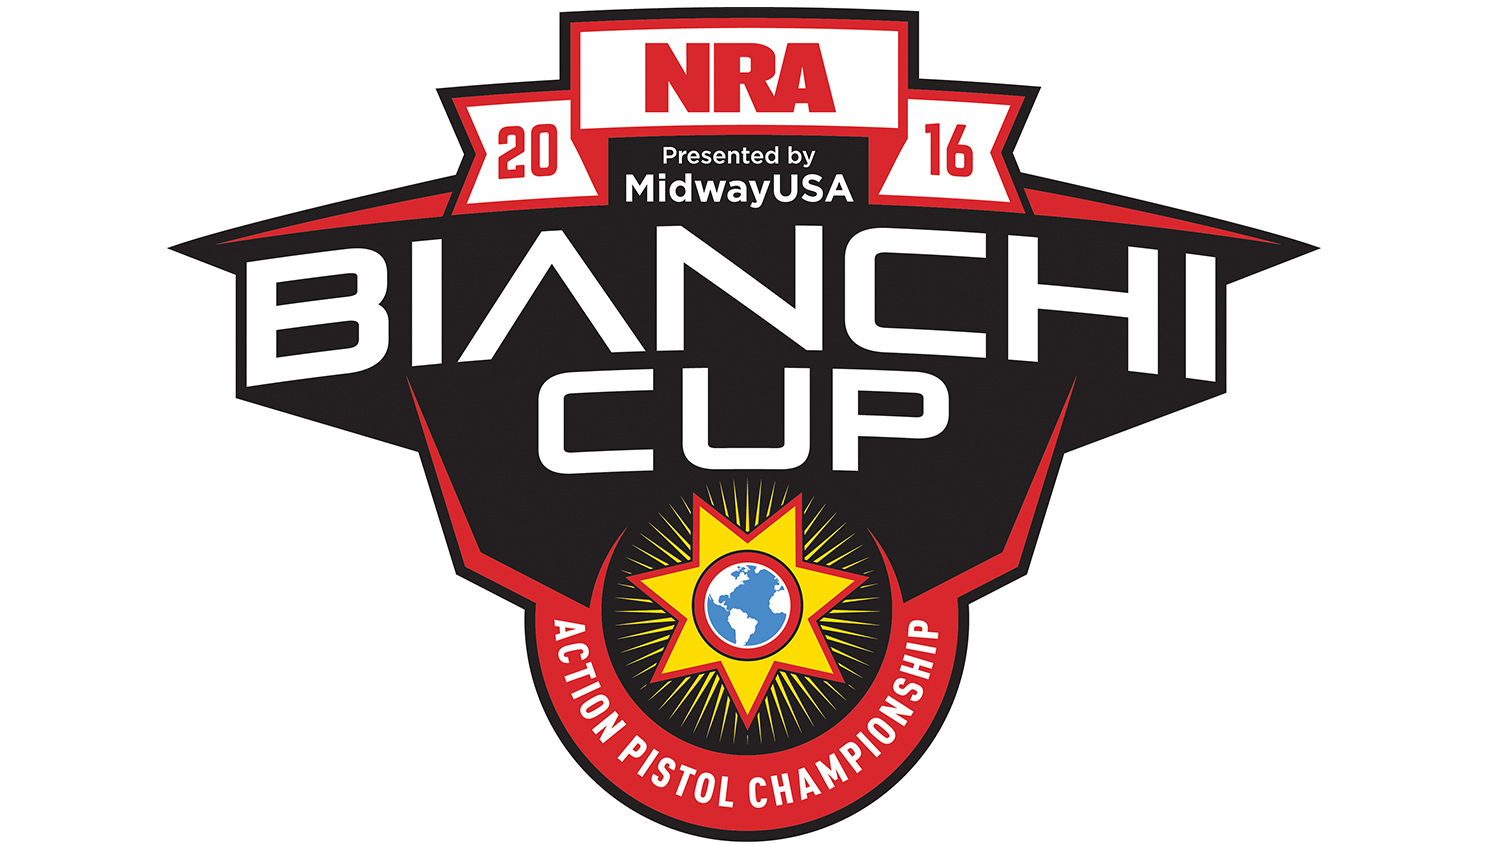 New Championship Round at the 2016 Bianchi Cup